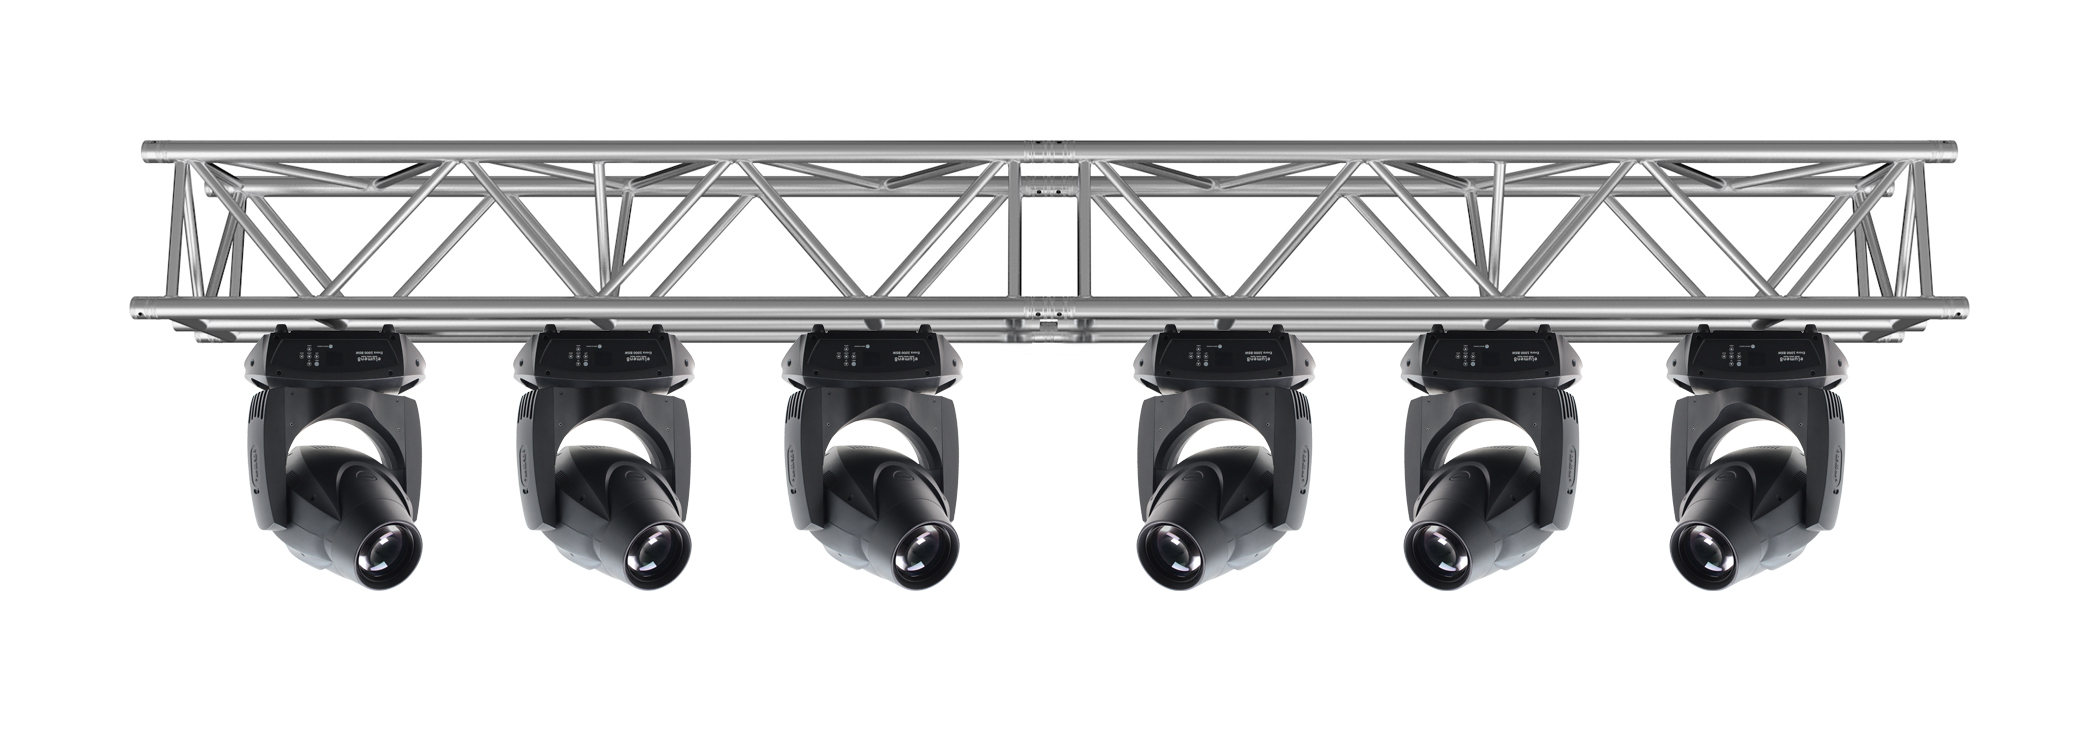 Global Truss F45 System